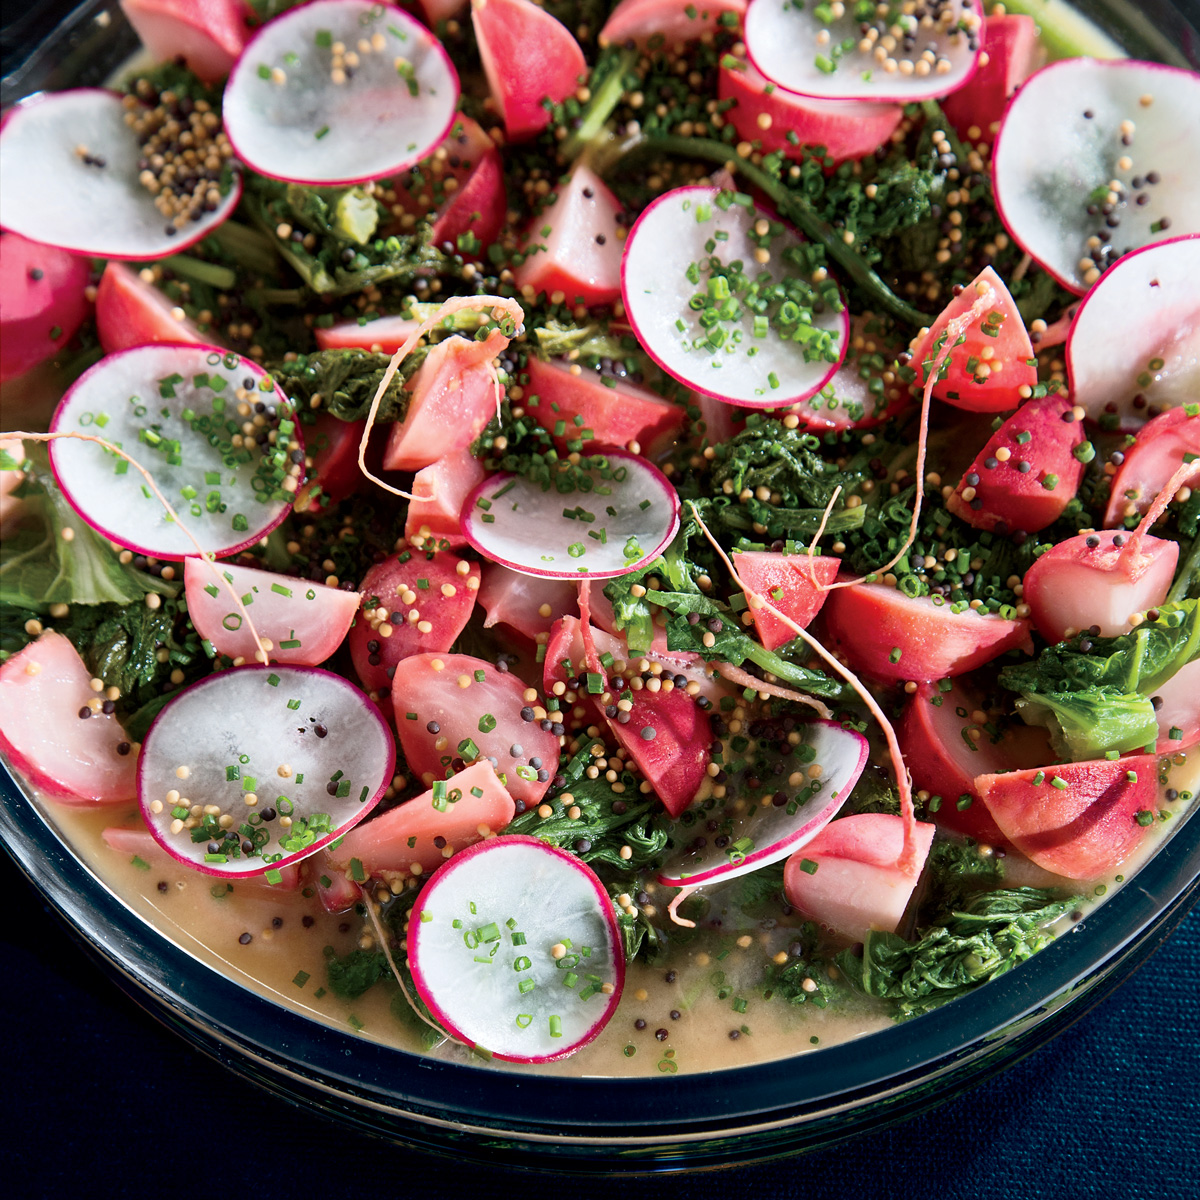 Honey-Mustard-Braised Radishes and Mustard Greens